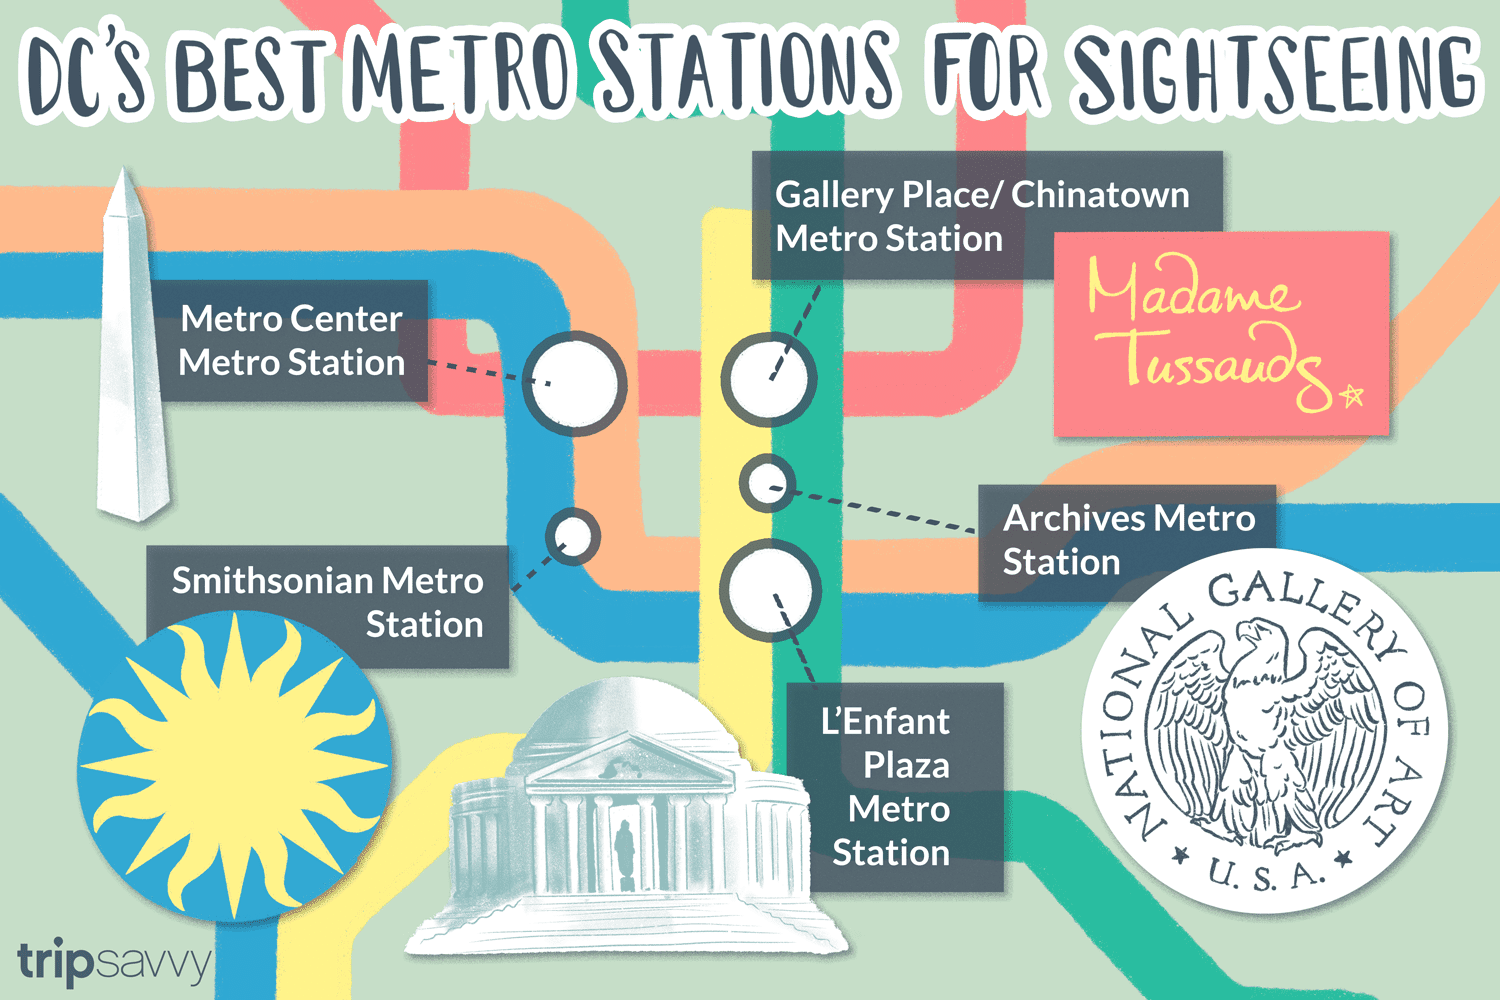 Dc Subway Map Square.The Best Metro Stations For Sightseeing In Washington Dc